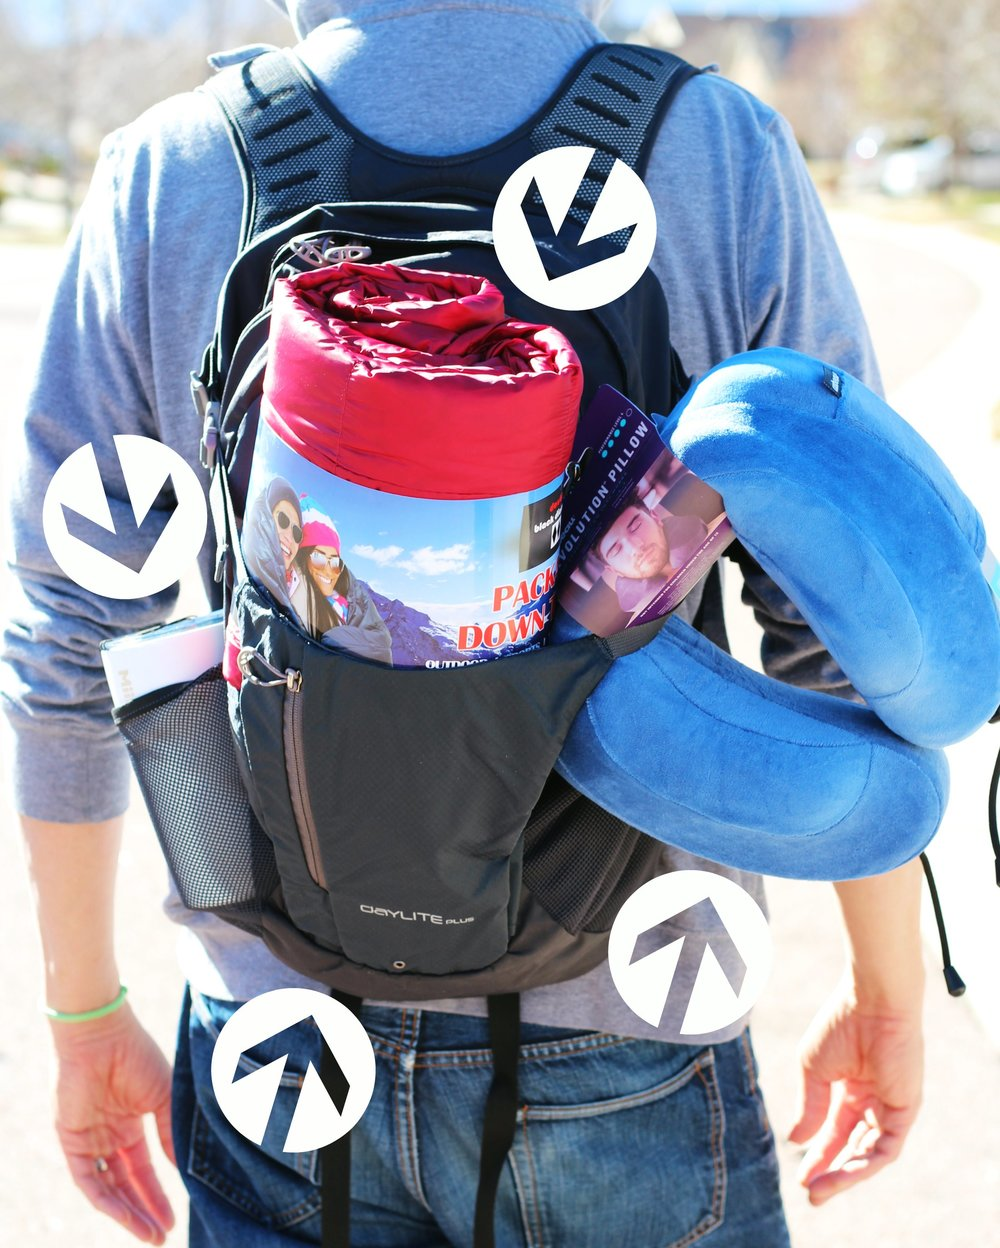 Travel gear giveaway! Enter our Thanksgiveaway! One lucky winner will receive an Osprey Daylite Plus backpack, Cabeau evolution travel pillow, MiiR pint cup, packable down throw, and our new eBooklet:  20 Adventurous Family Vacations. Starts 11/07/17 and ends 11/28/17.